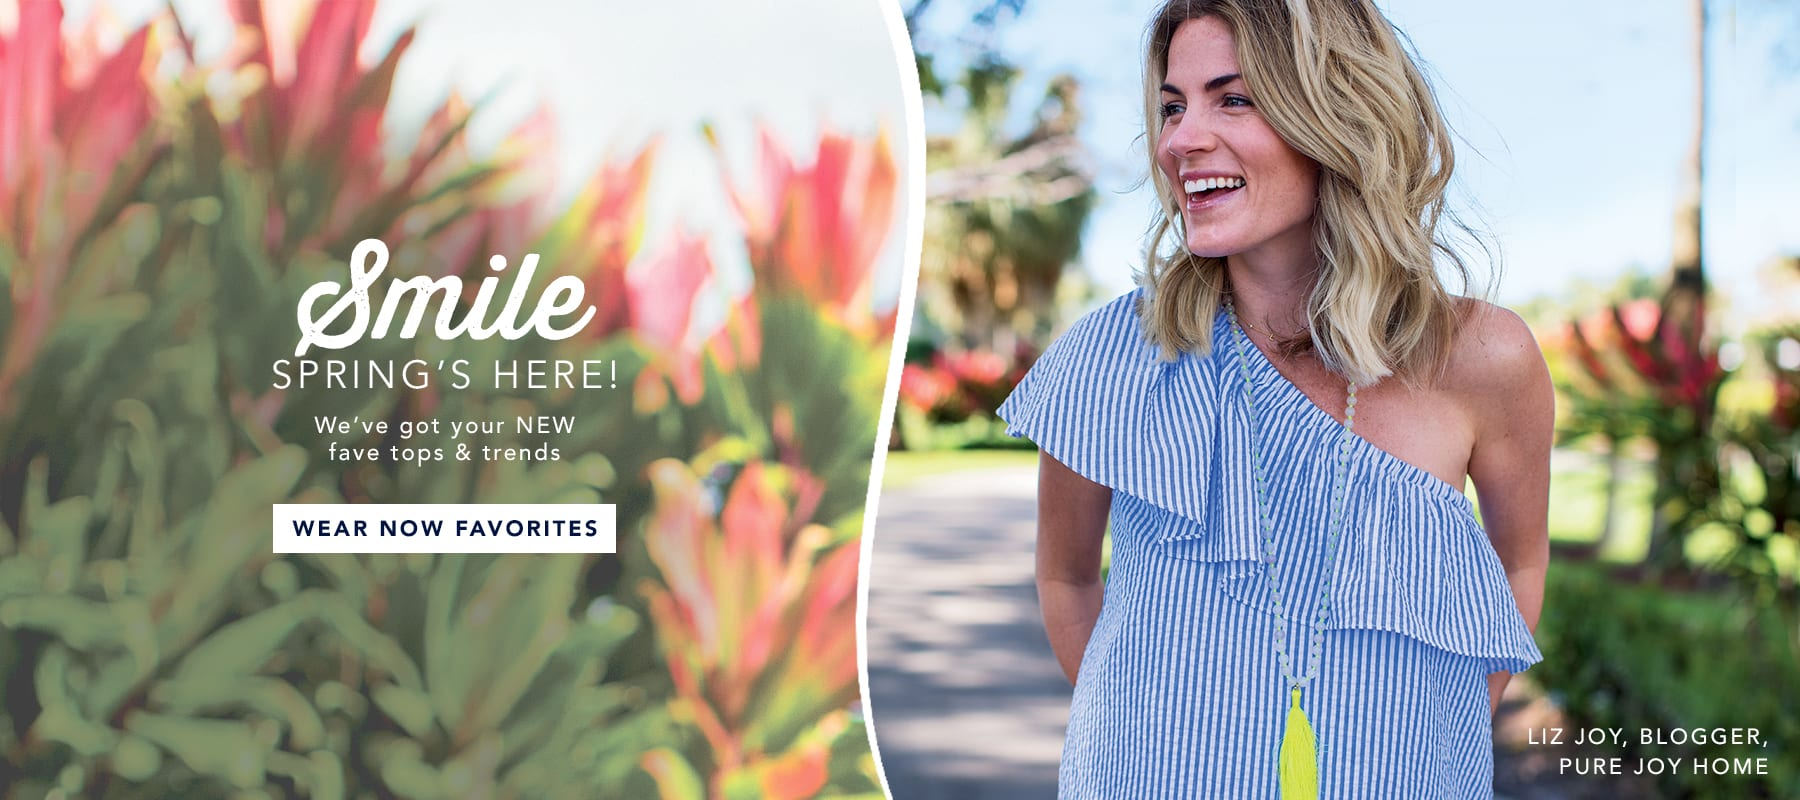 Smile spring's here! Shop wear now favorites for her.